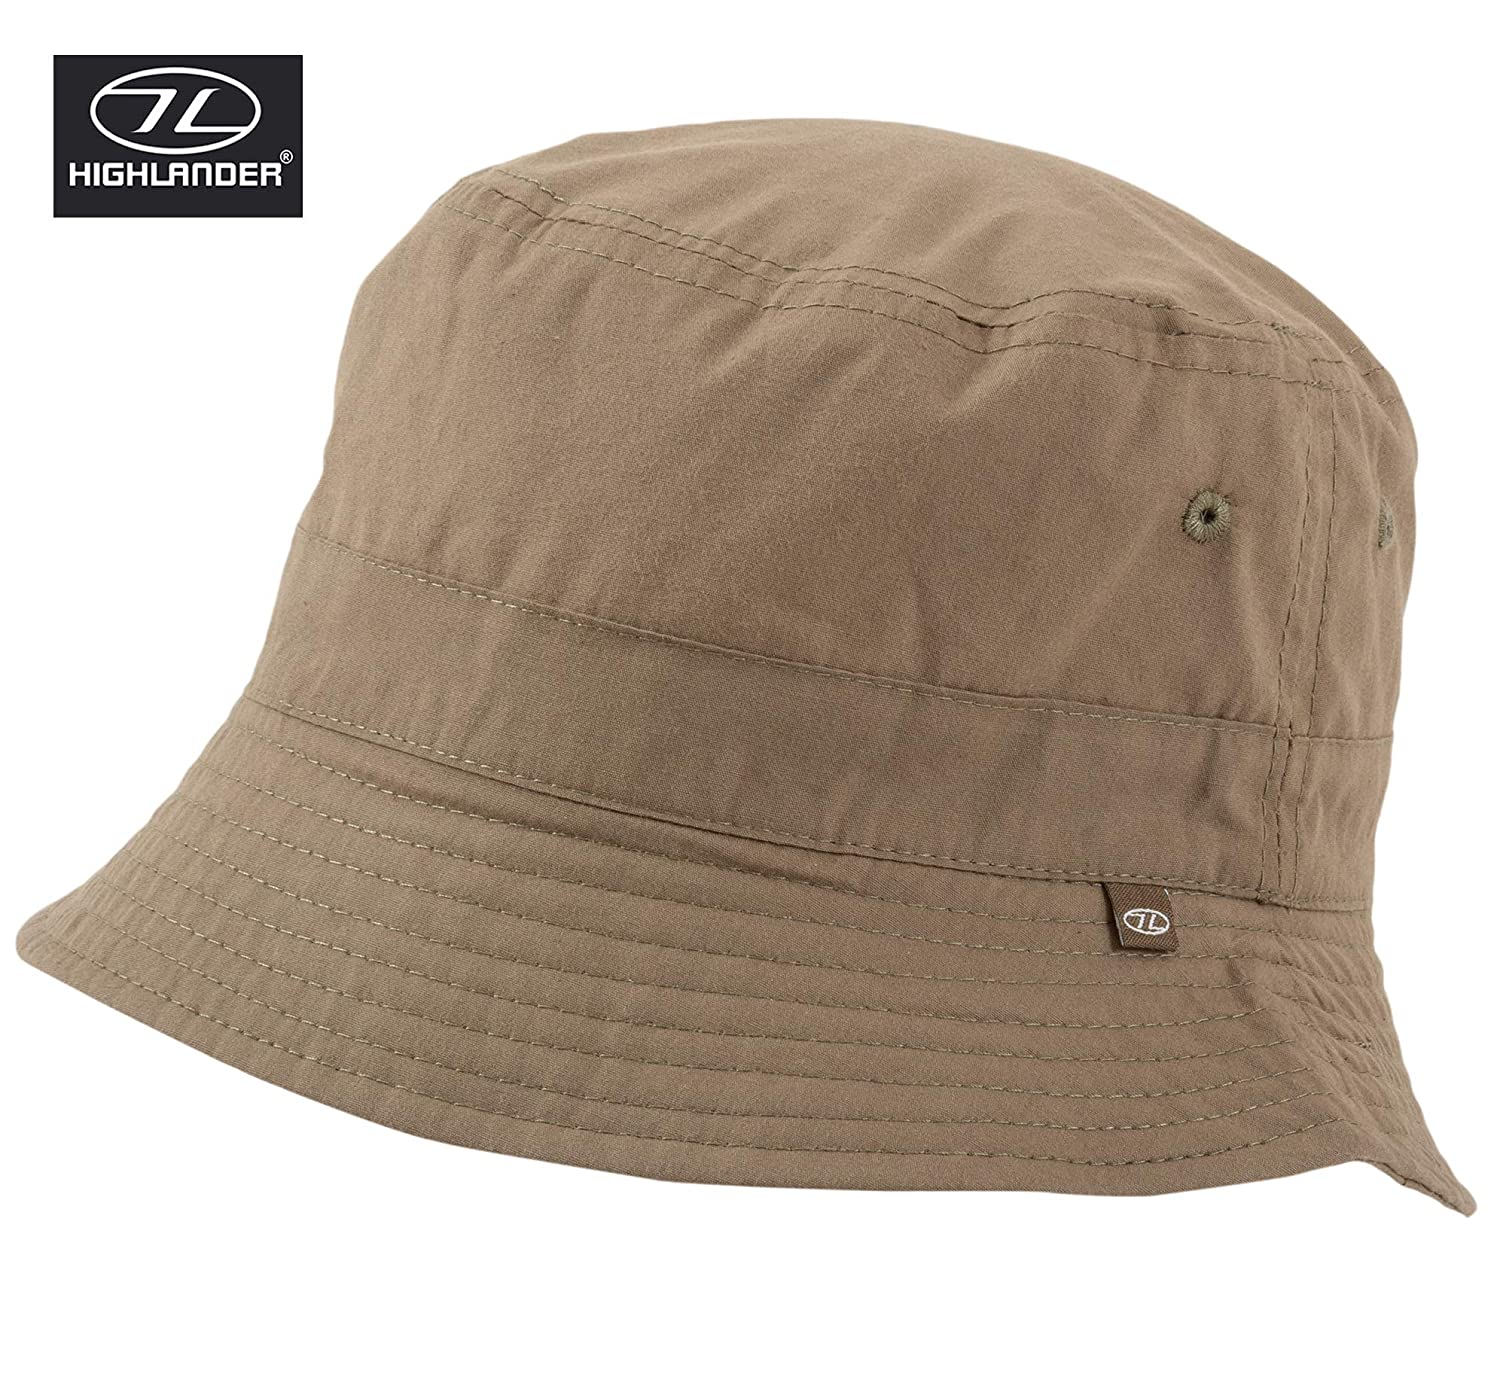 XL Small - 57cm Highlander Mens Ladies Unisex Festival Outdoor Bucket Fishing Travel Sun Hat Stone Colour Small